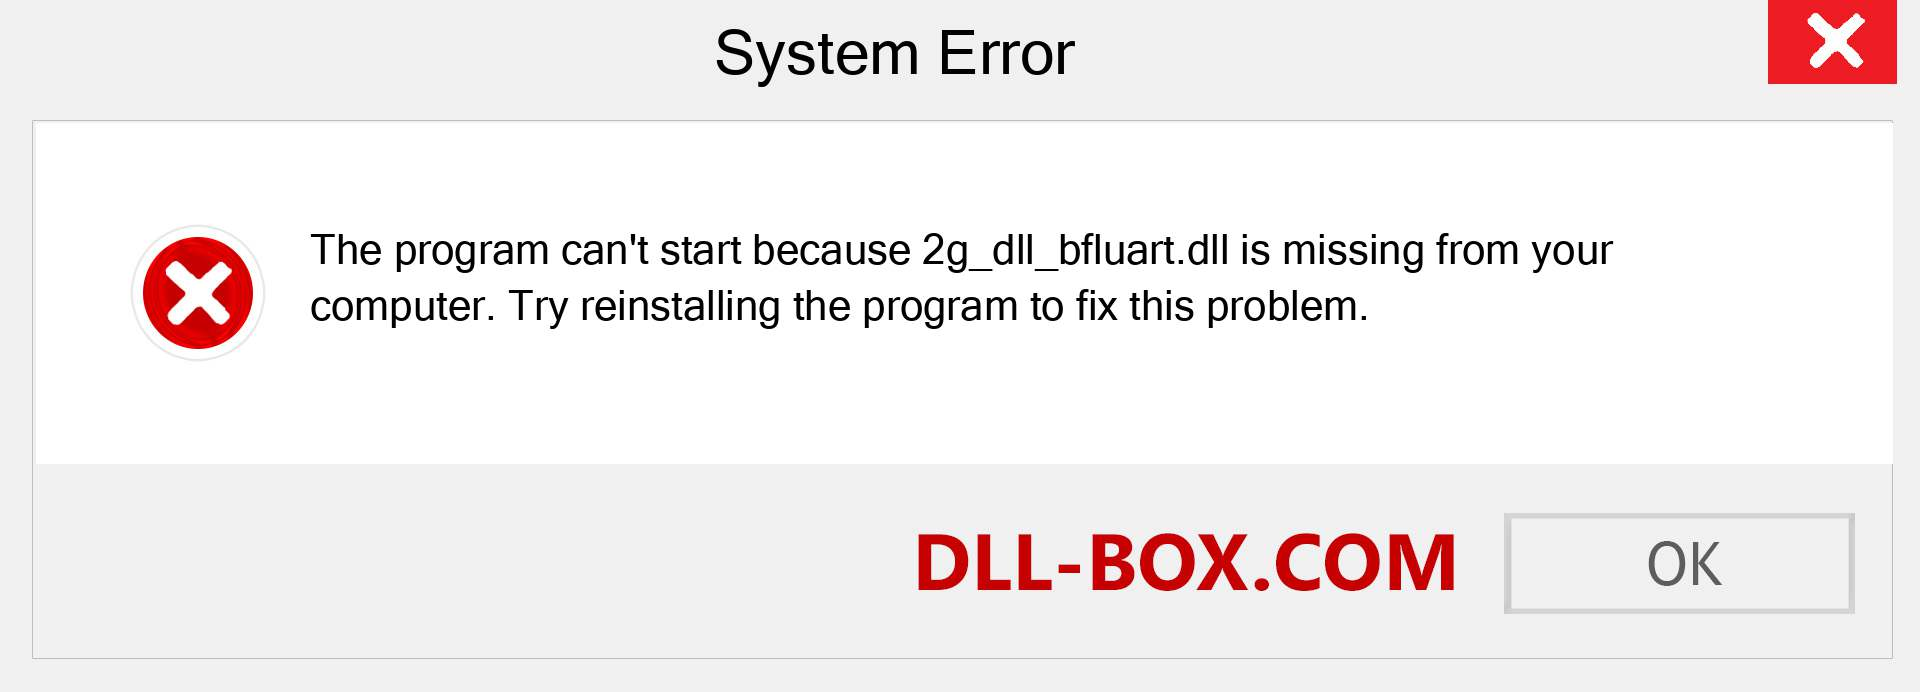 2g_dll_bfluart.dll file is missing?. Download for Windows 7, 8, 10 - Fix  2g_dll_bfluart dll Missing Error on Windows, photos, images